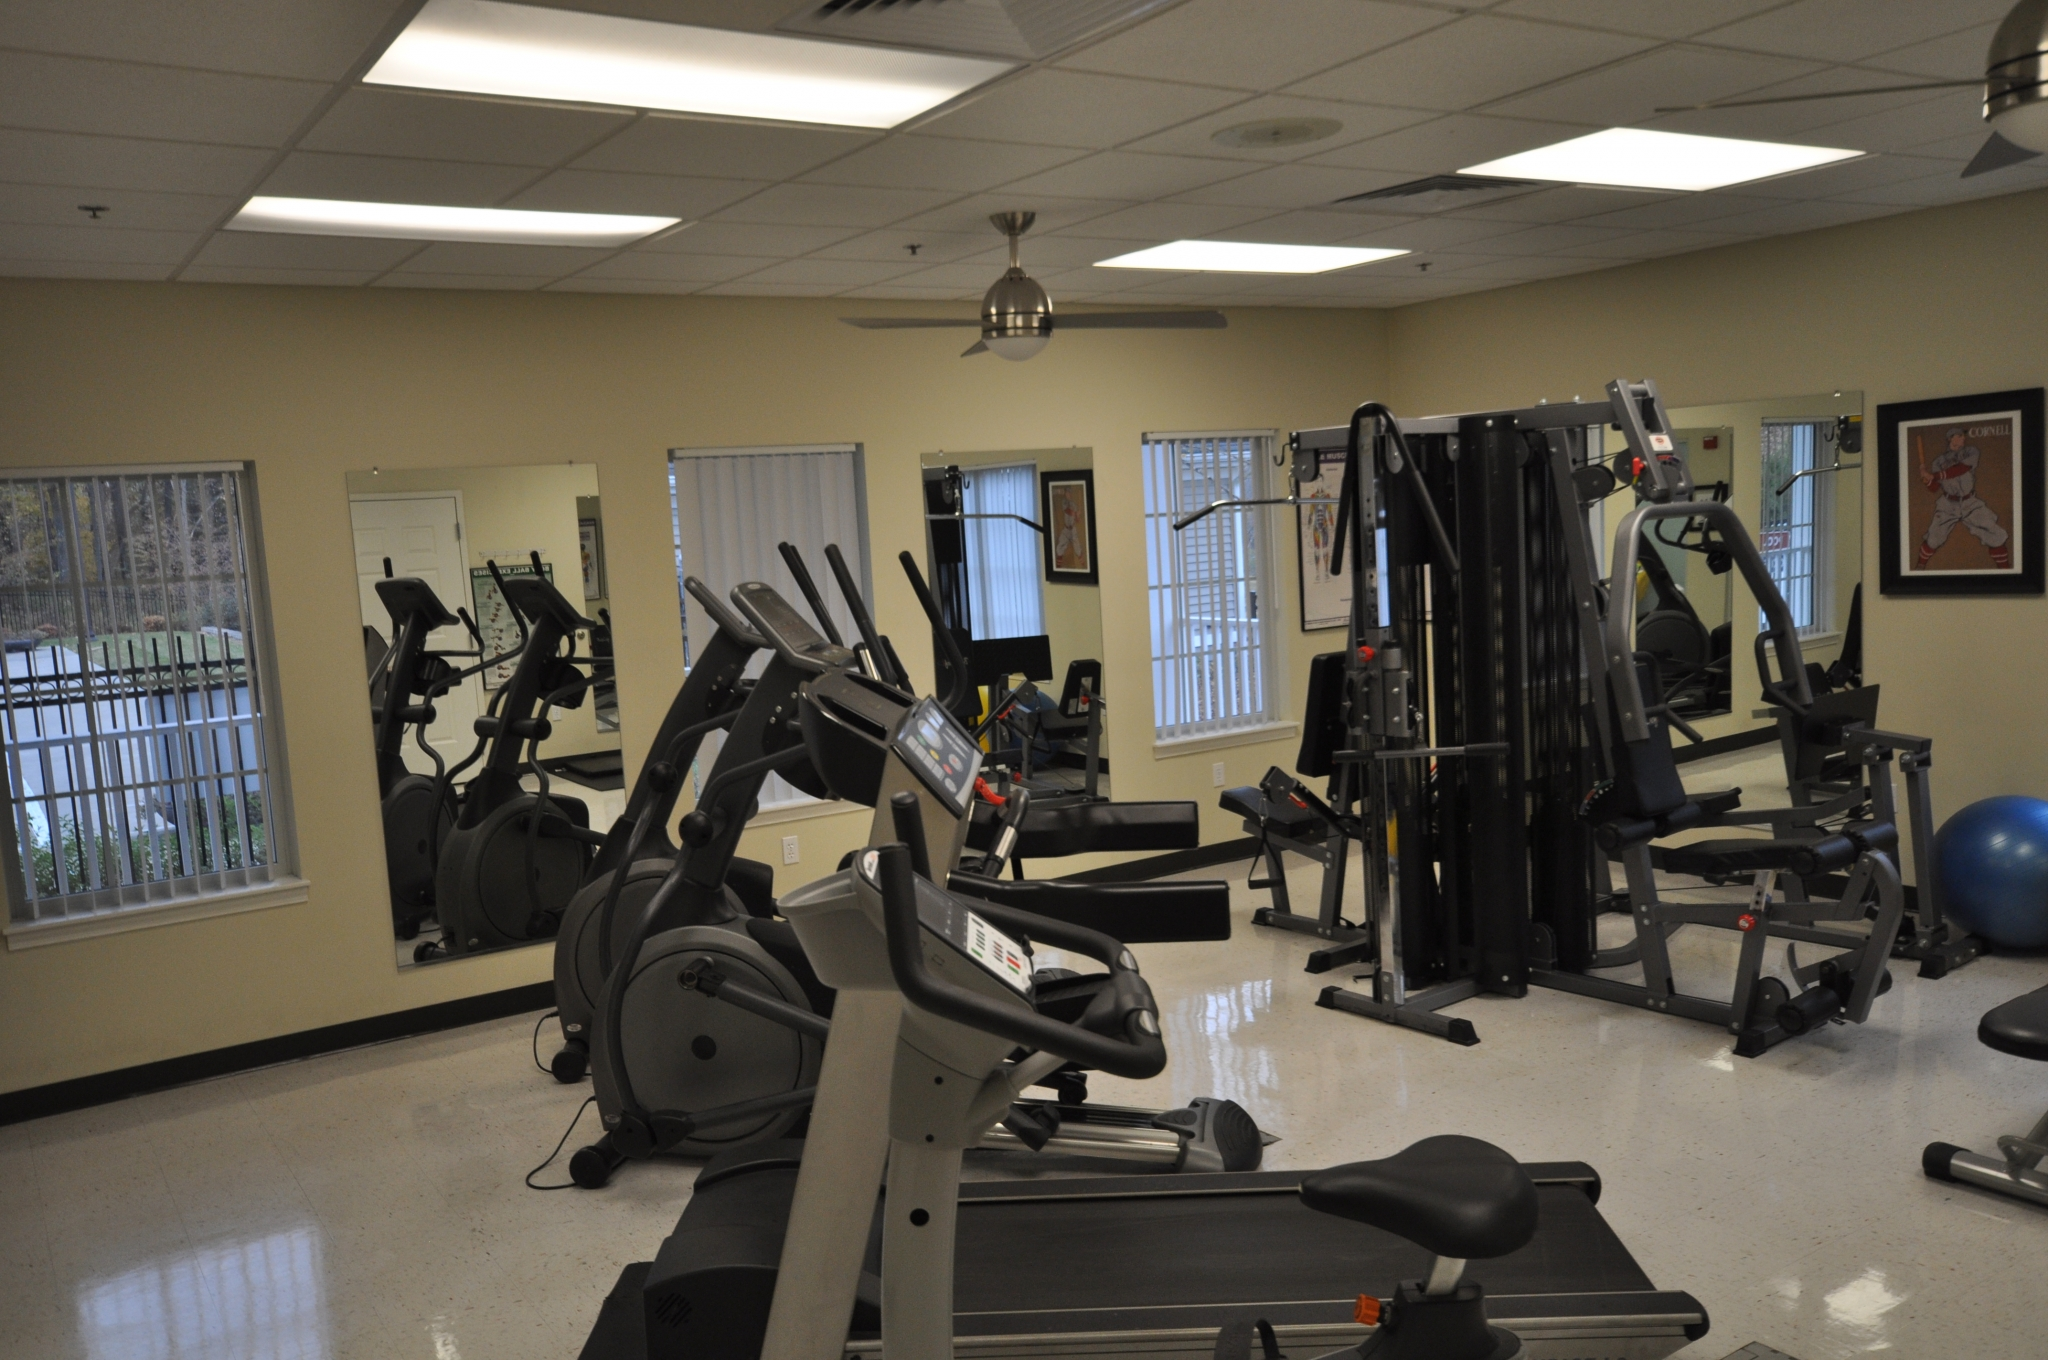 Home and community amenities new windsor